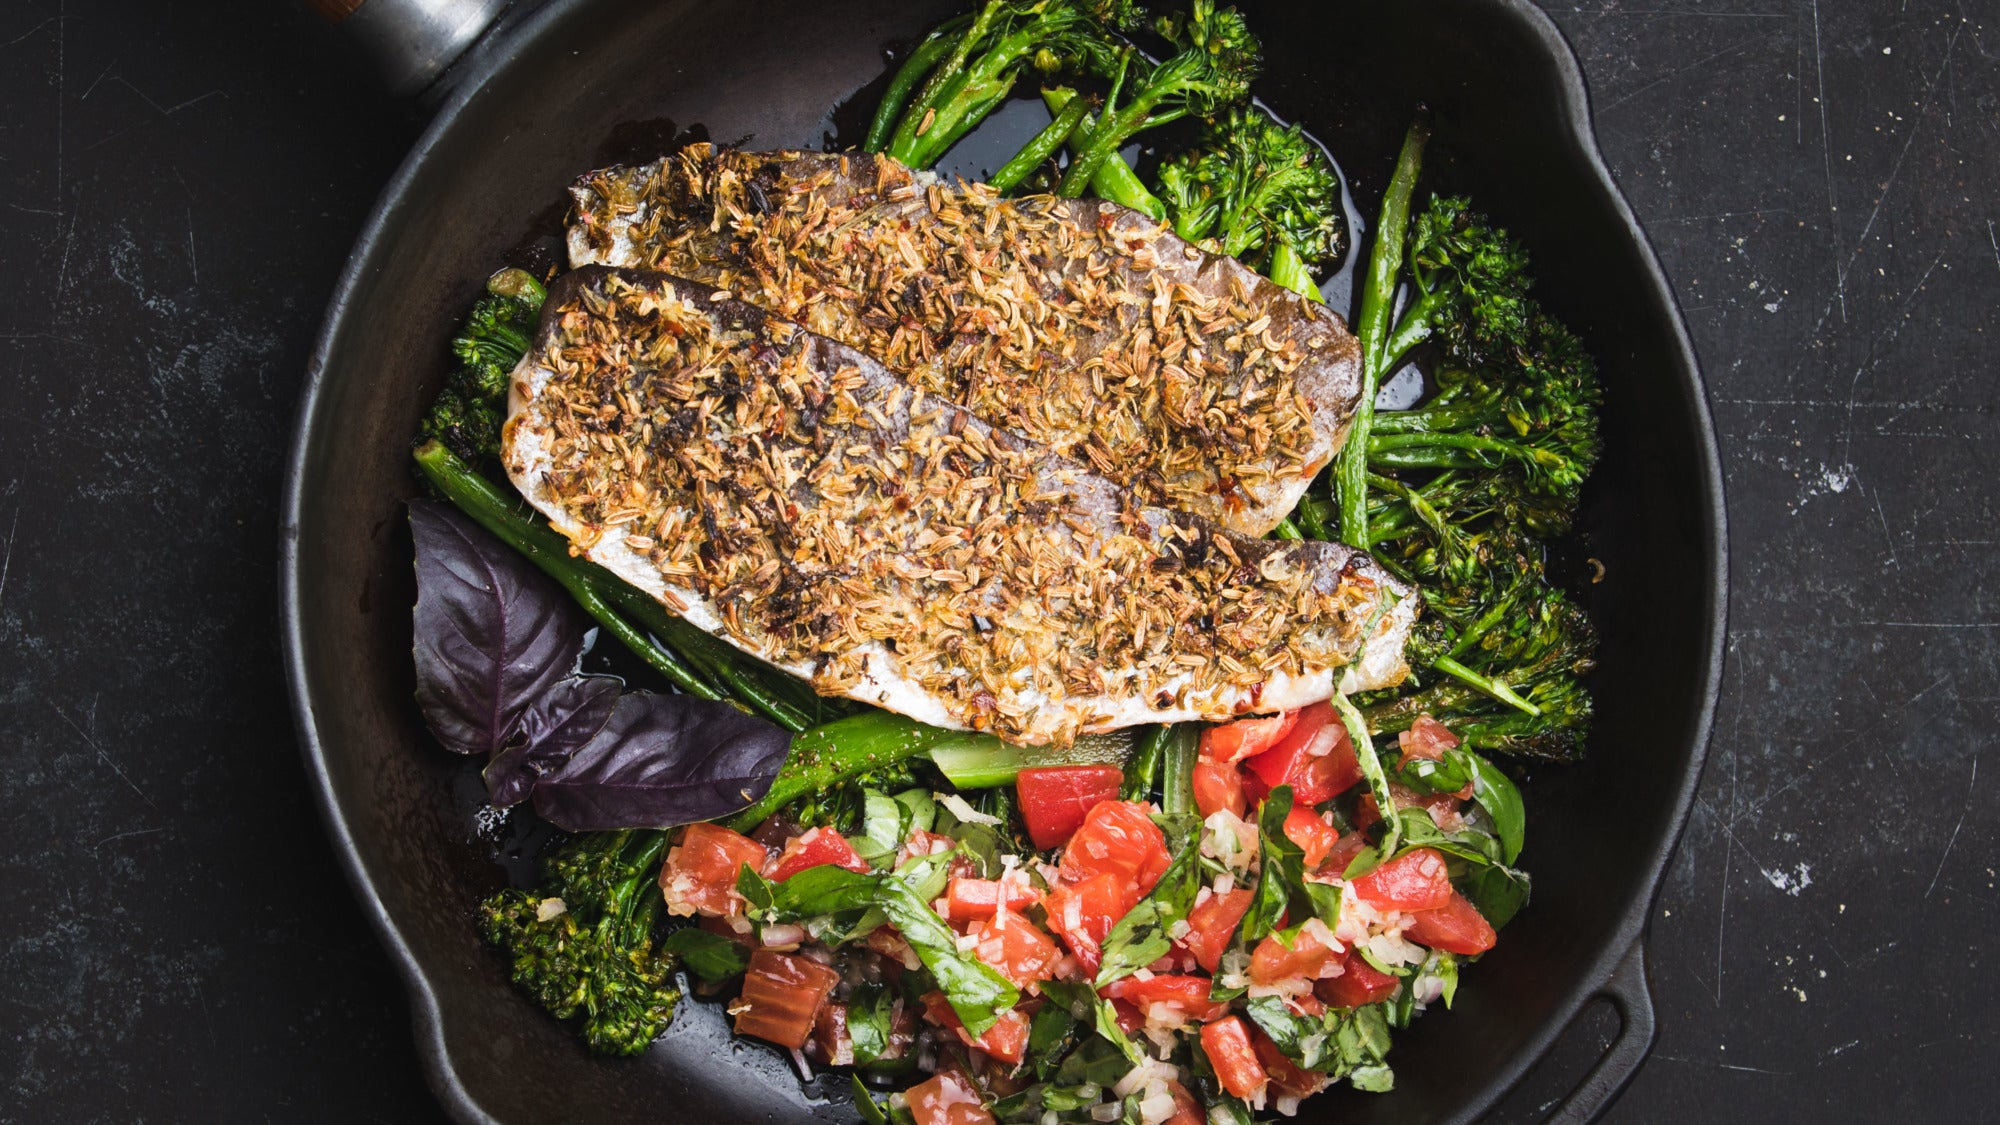 Spiced Trout with Roasted Broccoli and Tomato Dressing